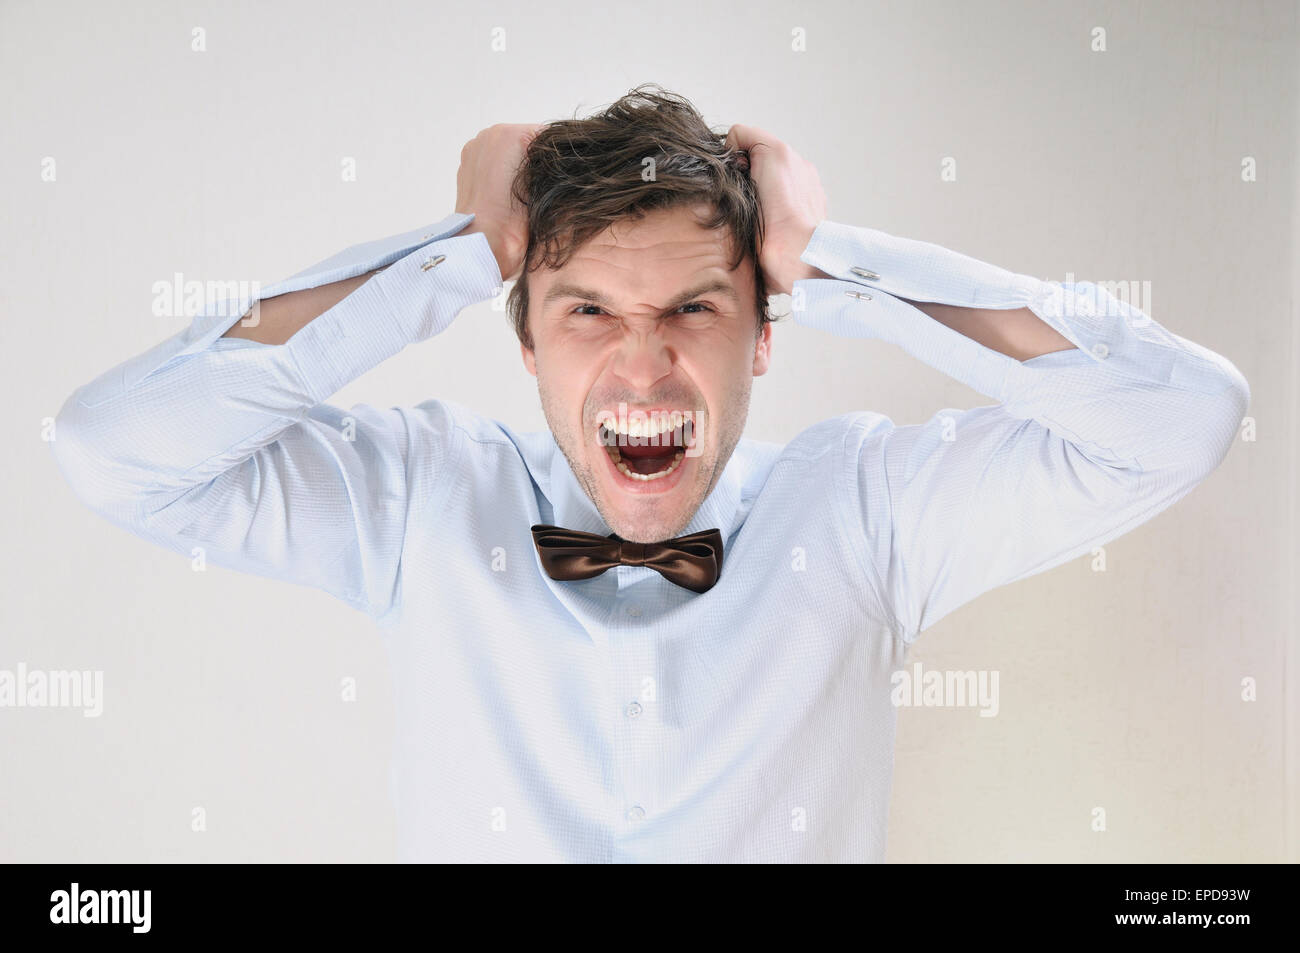 emotional portrait of attractive screaming man on white background, business concept - Stock Image